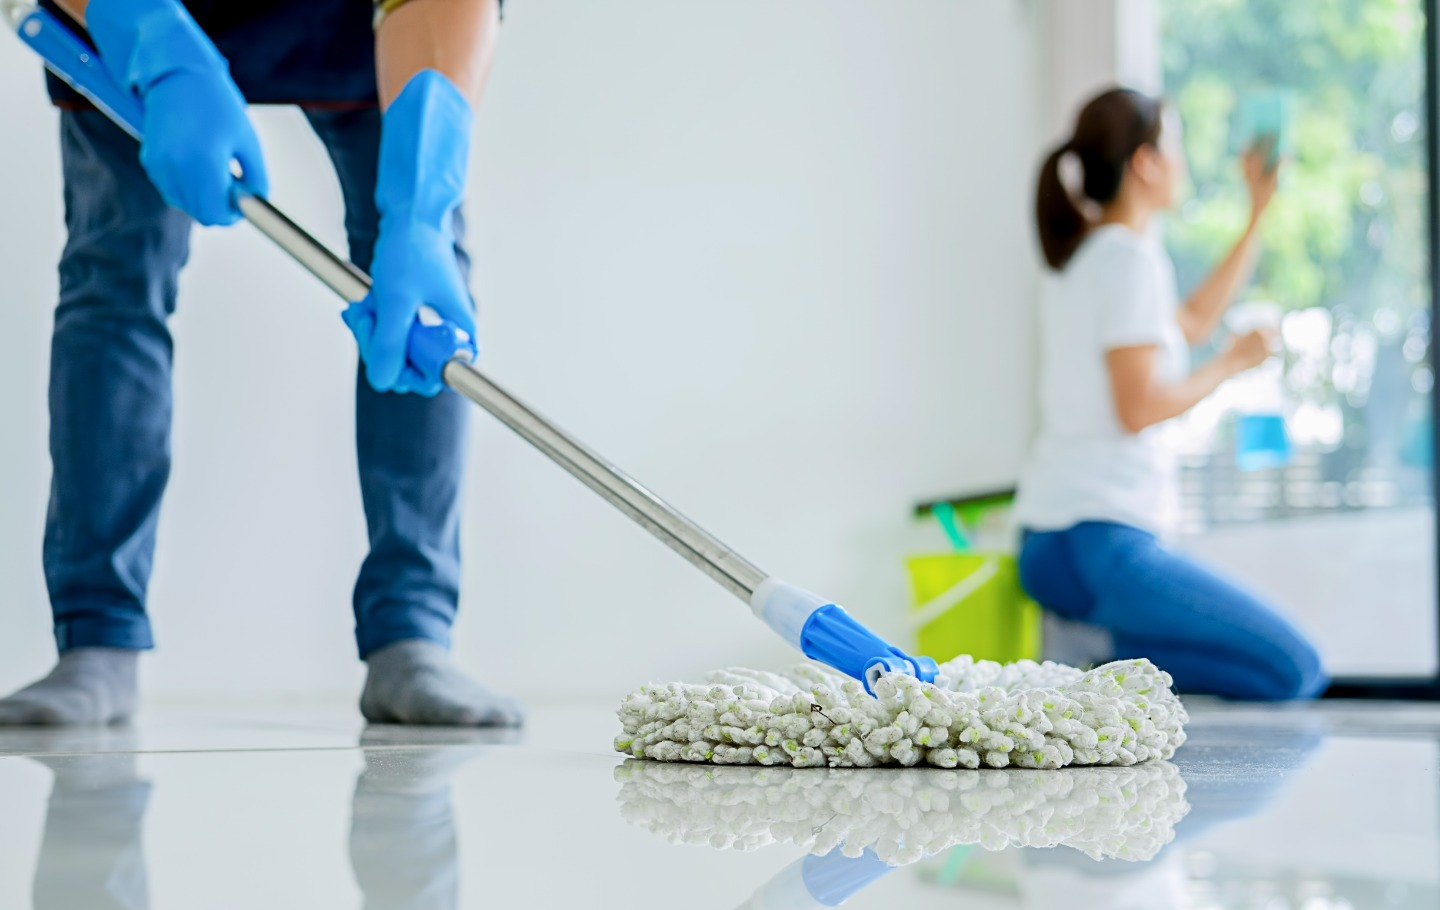 professional cleaning services in Adelaide